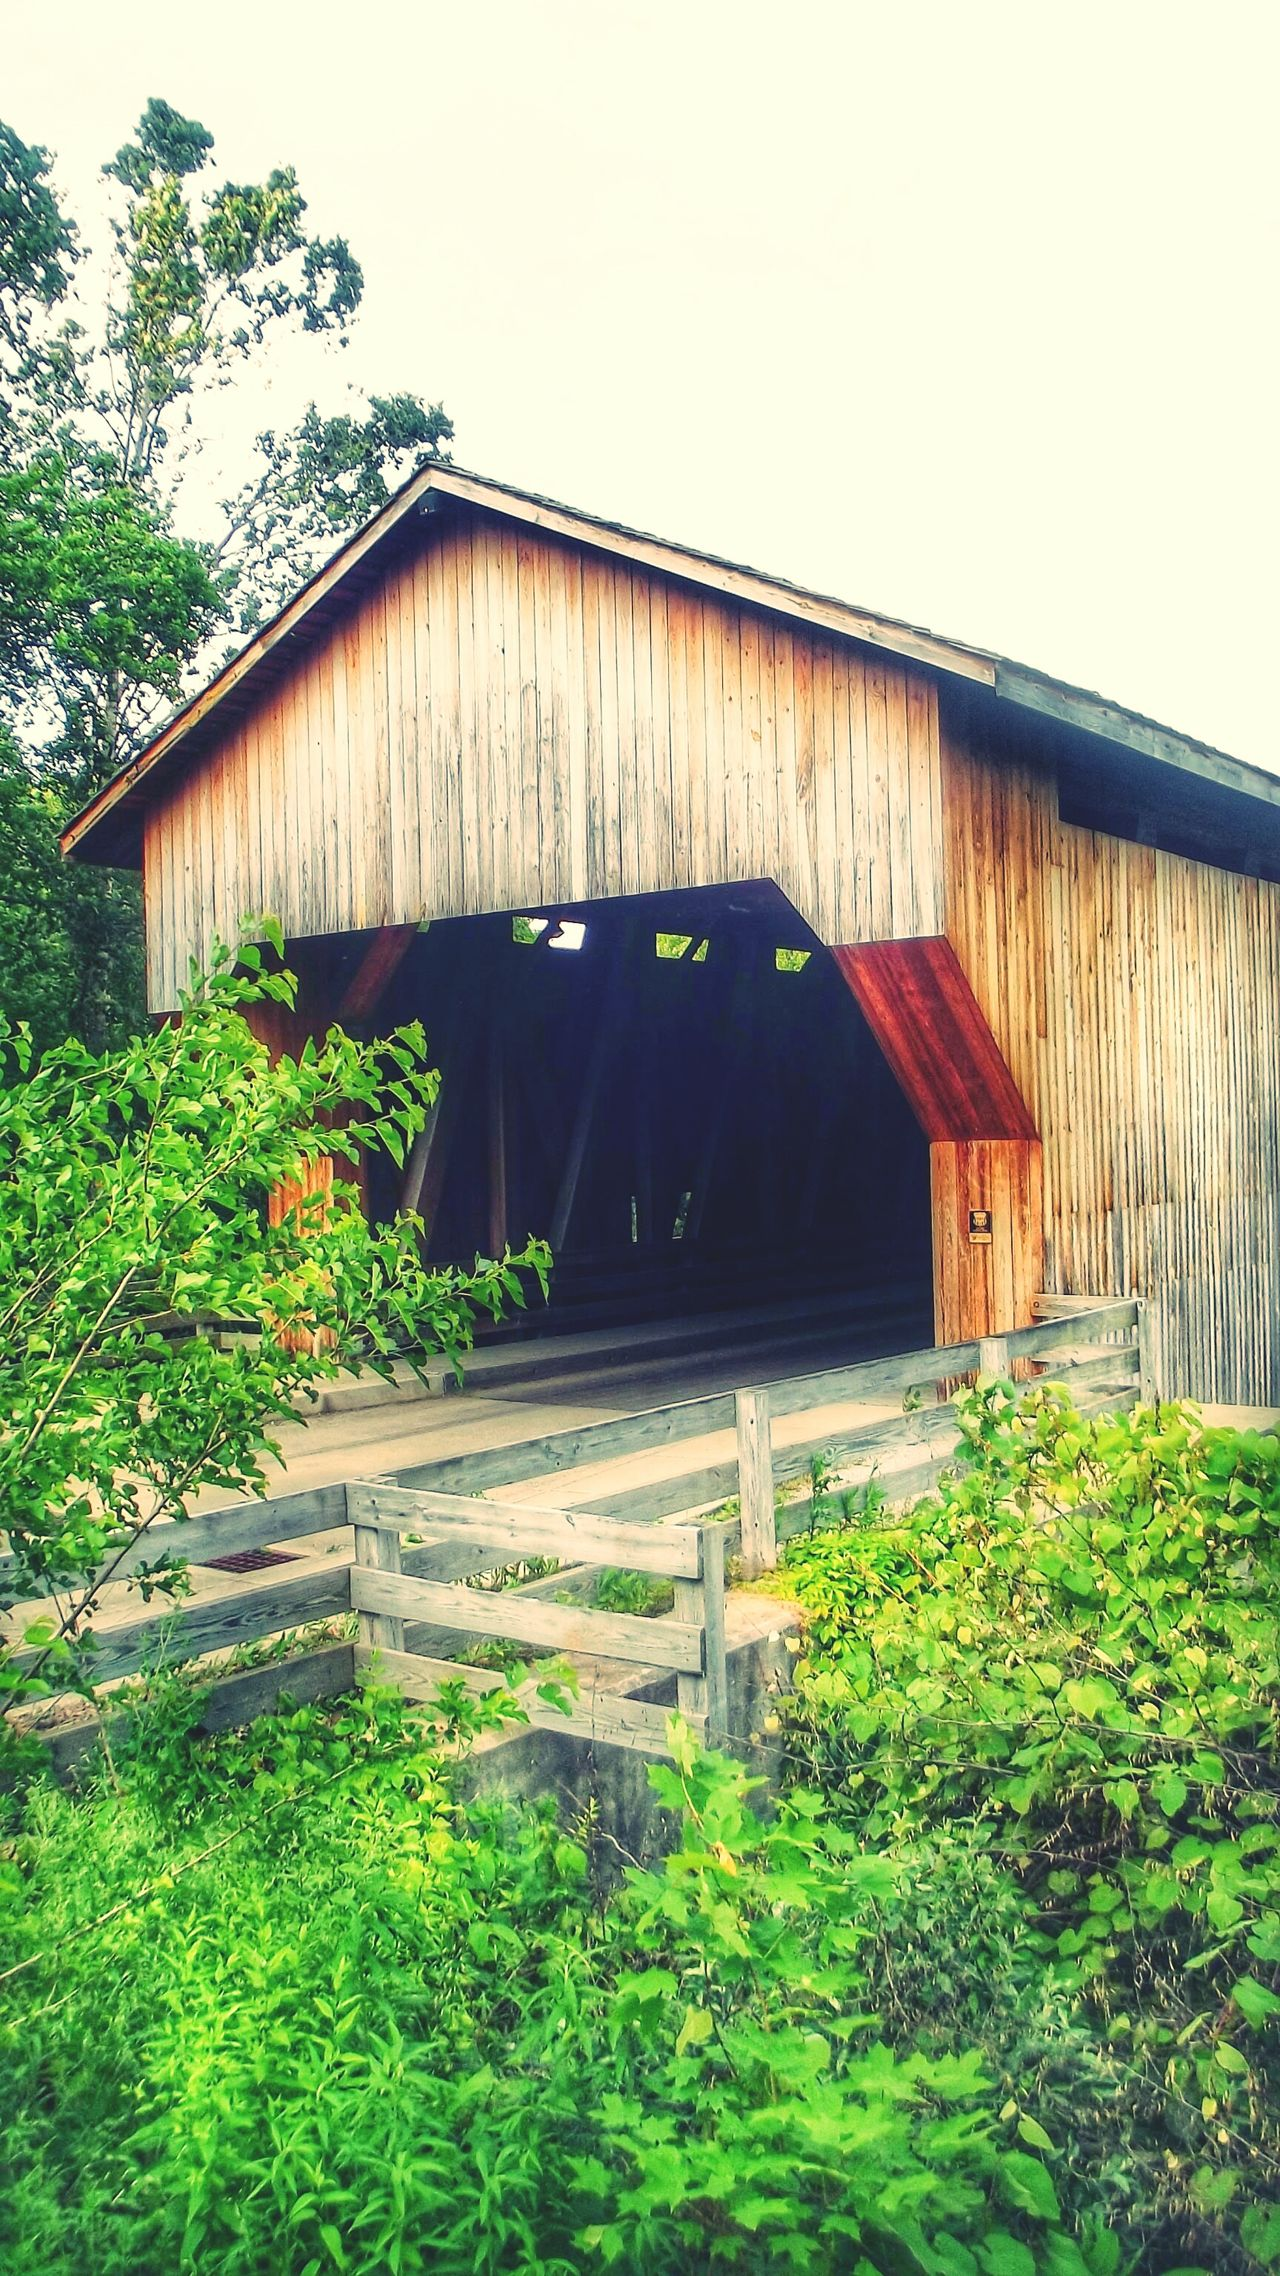 Built Structure Outdoors No People Wood - Material Green Color Architecture Building Exterior EyeEm Nature Lover Outdoor Photography Eyeemphotography Covered Bridge